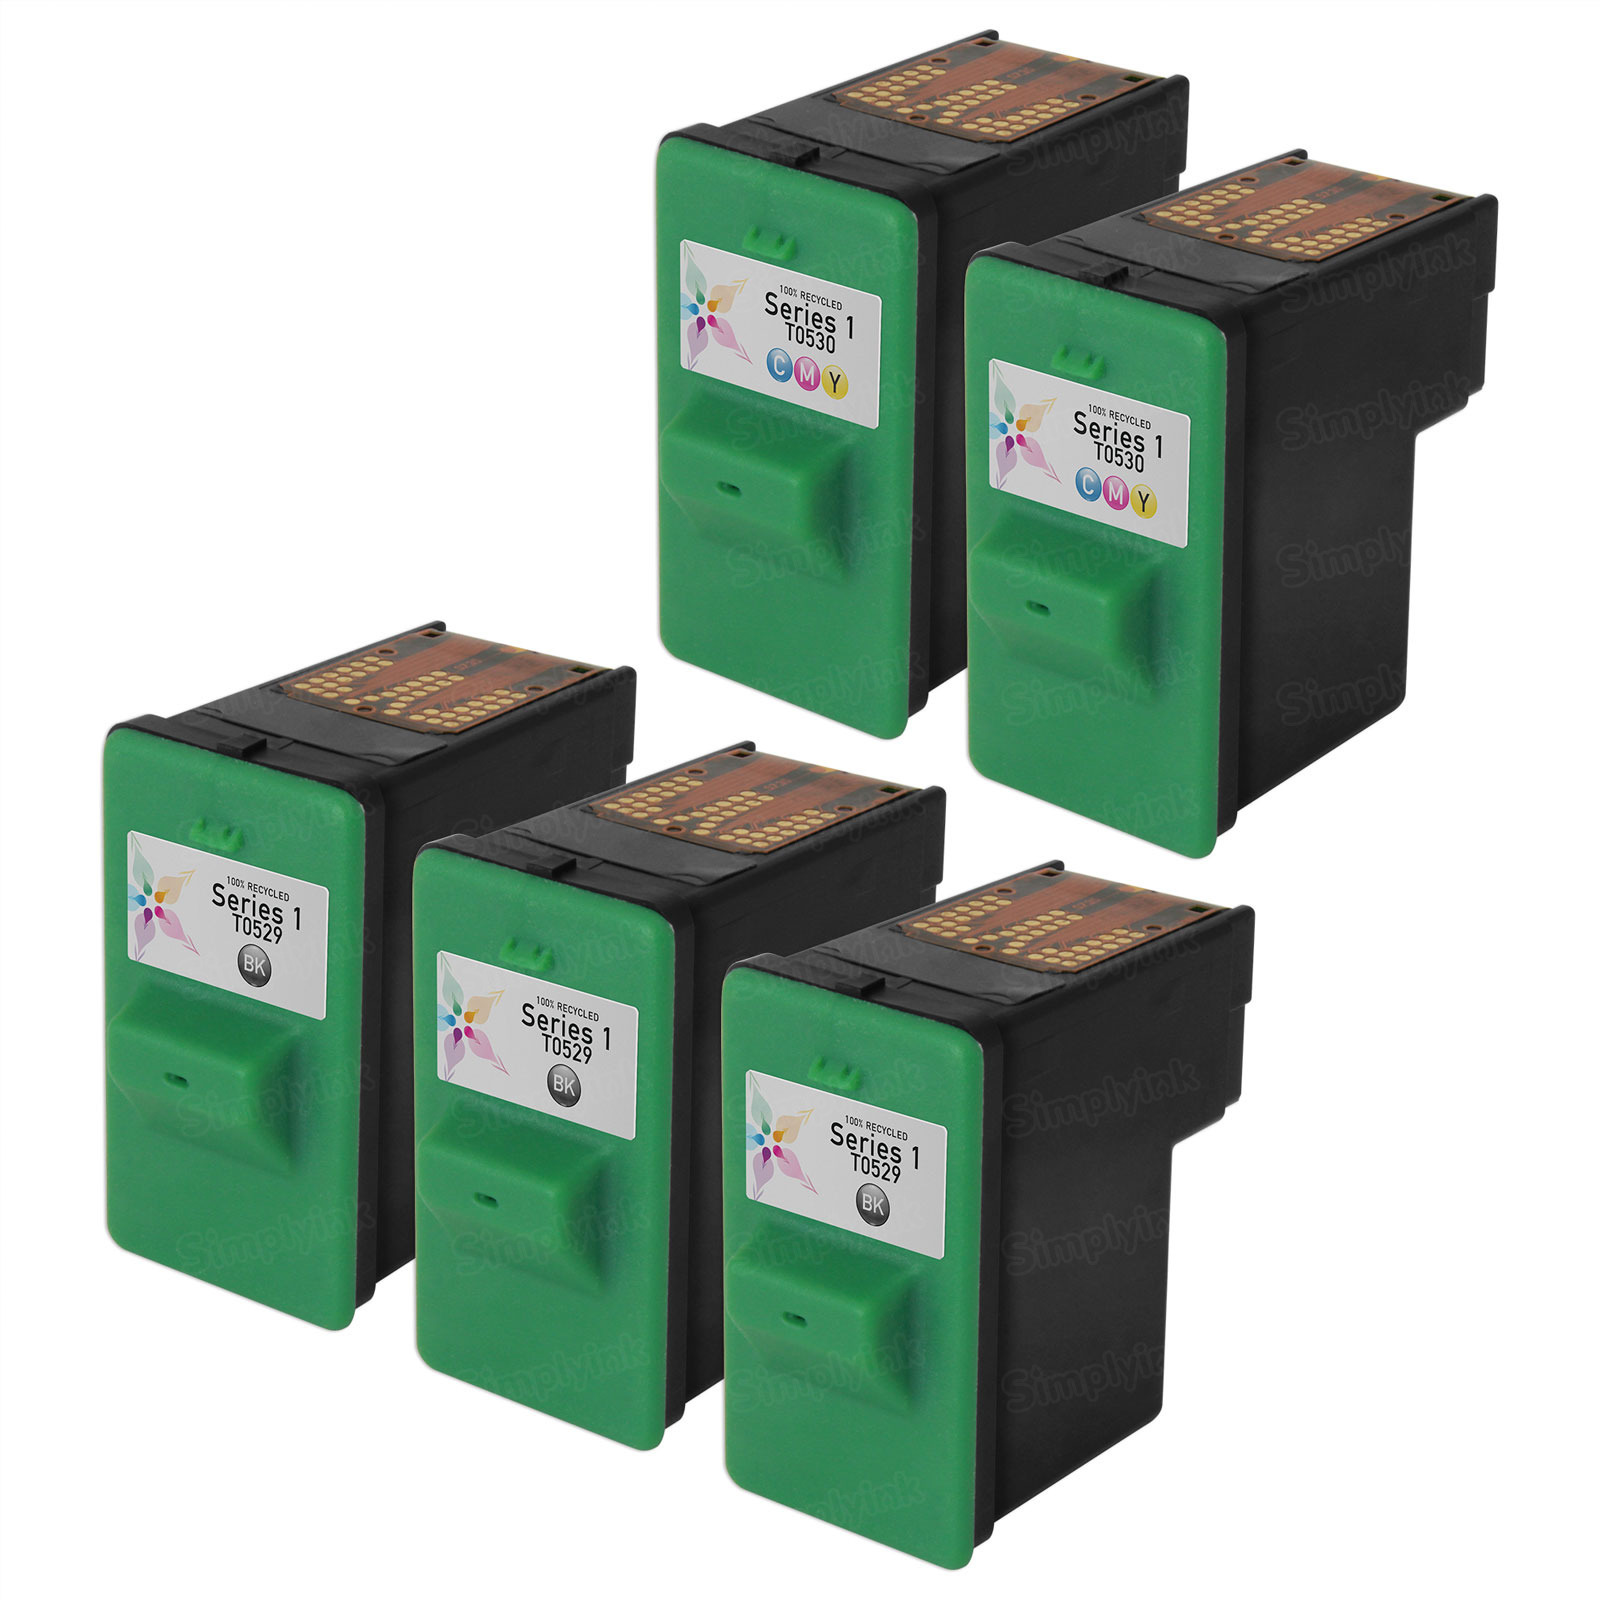 Inkjet Supplies for Dell Printers - Remanufactured Bulk Set of 5 Ink Cartridges 3 Black Dell T0529 (310-4142/Series 1) and 2 Color Dell T0530 (310-4143/Series 1)